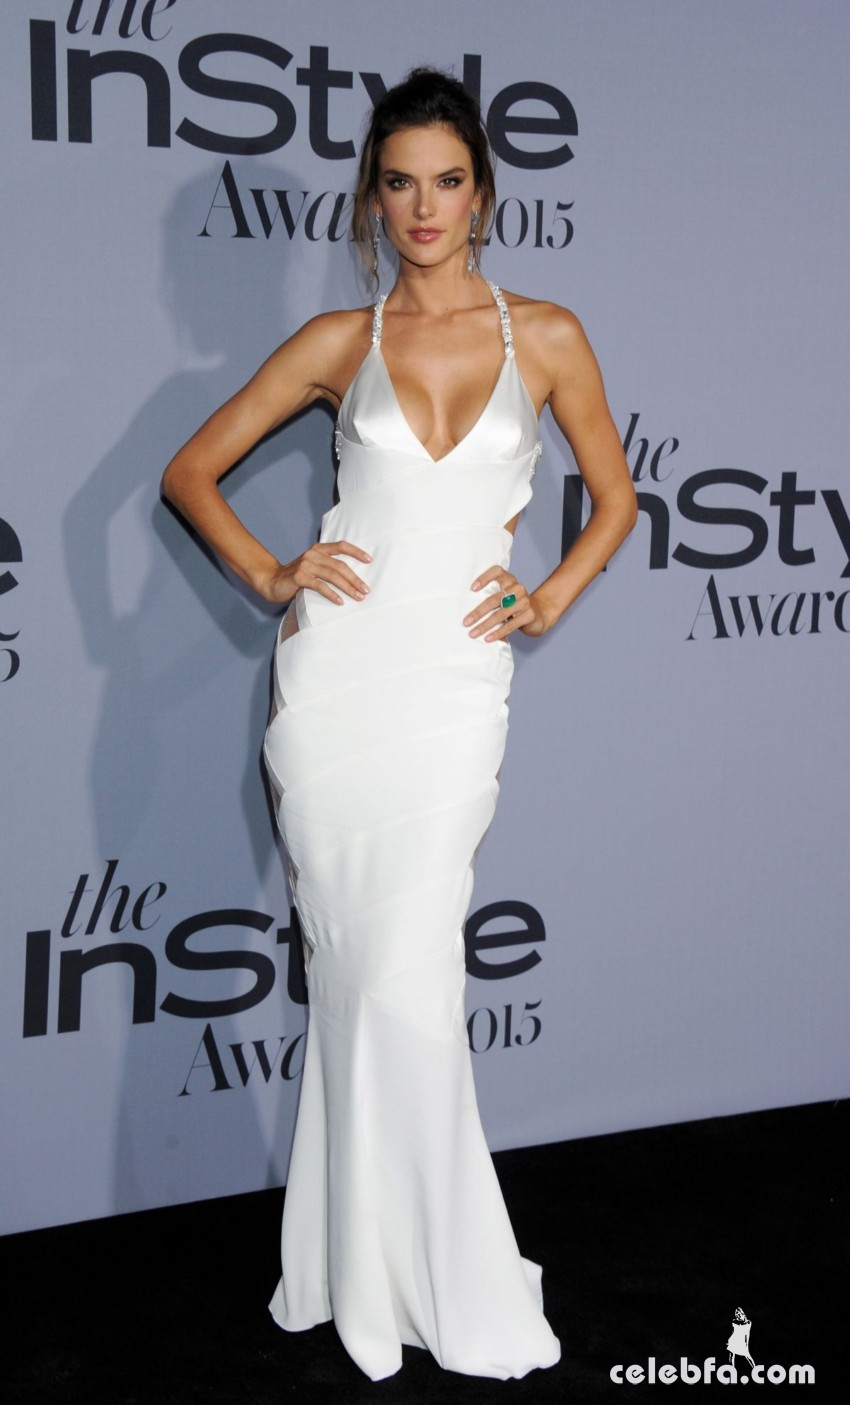 alessandra-ambrosio-at-instyle-awards-2015 (5)